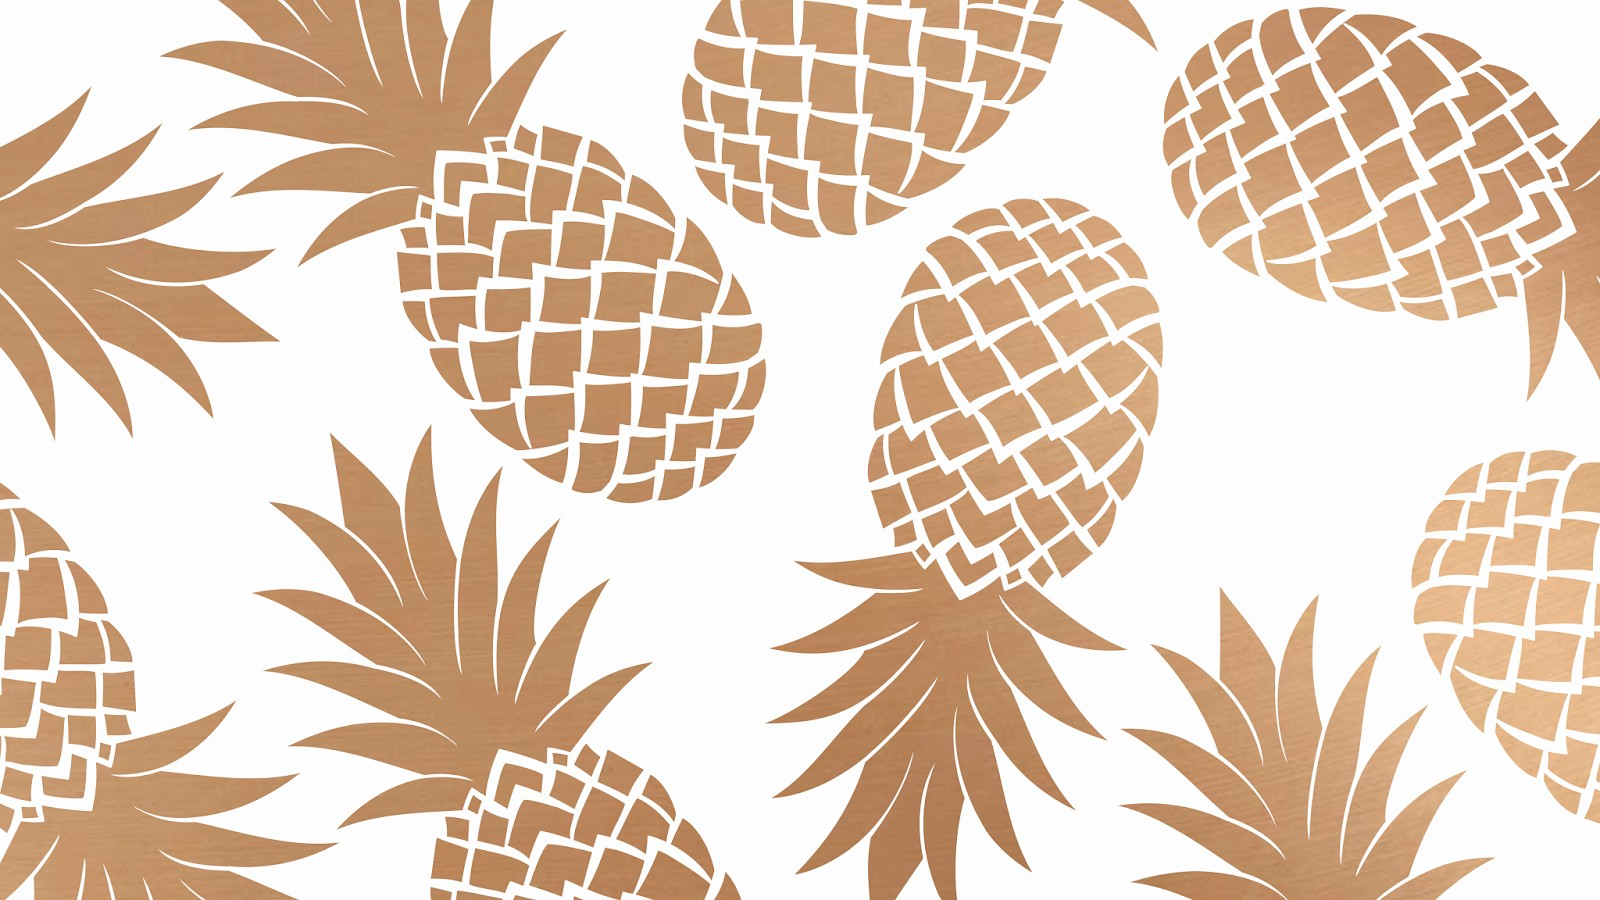 Pineapple clipart wallpaper Wallpapers High Pineapple Resolution LIA976